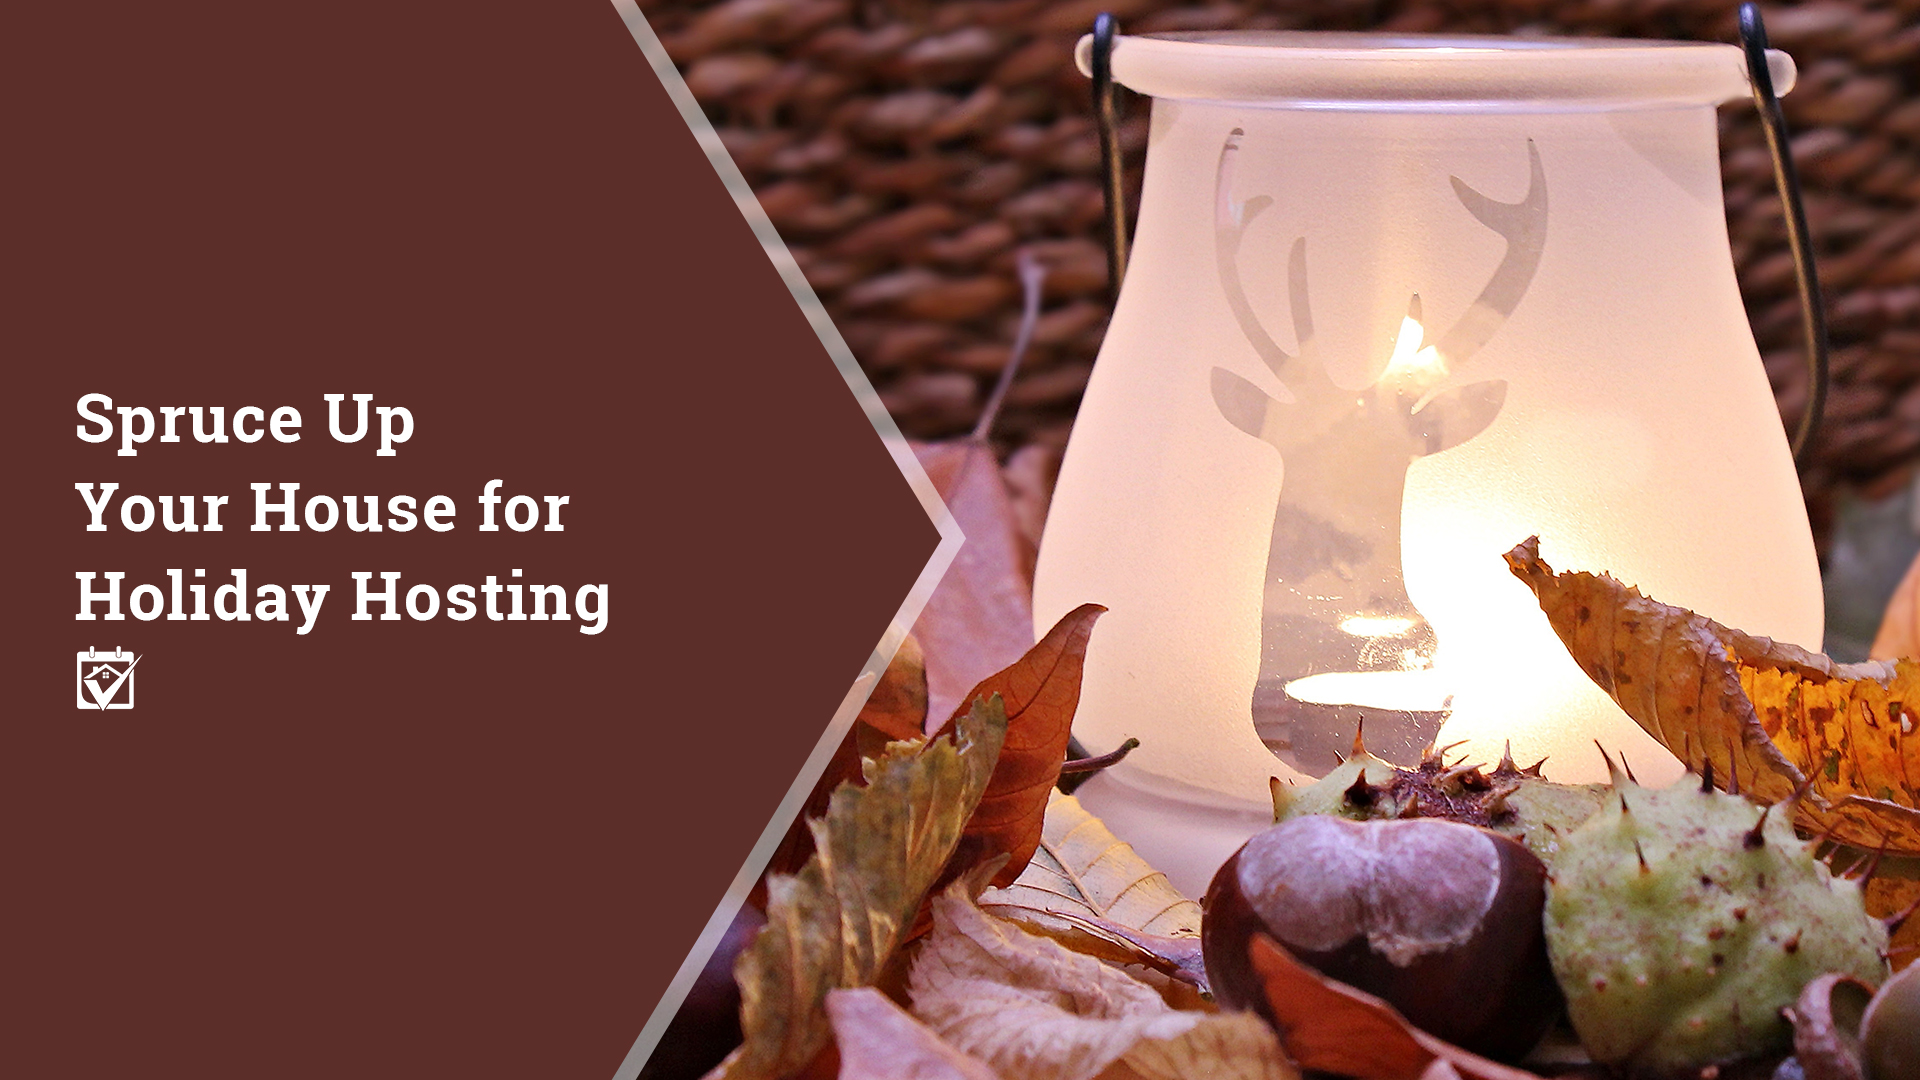 Spuce Up Your Home for Holiday Hosting